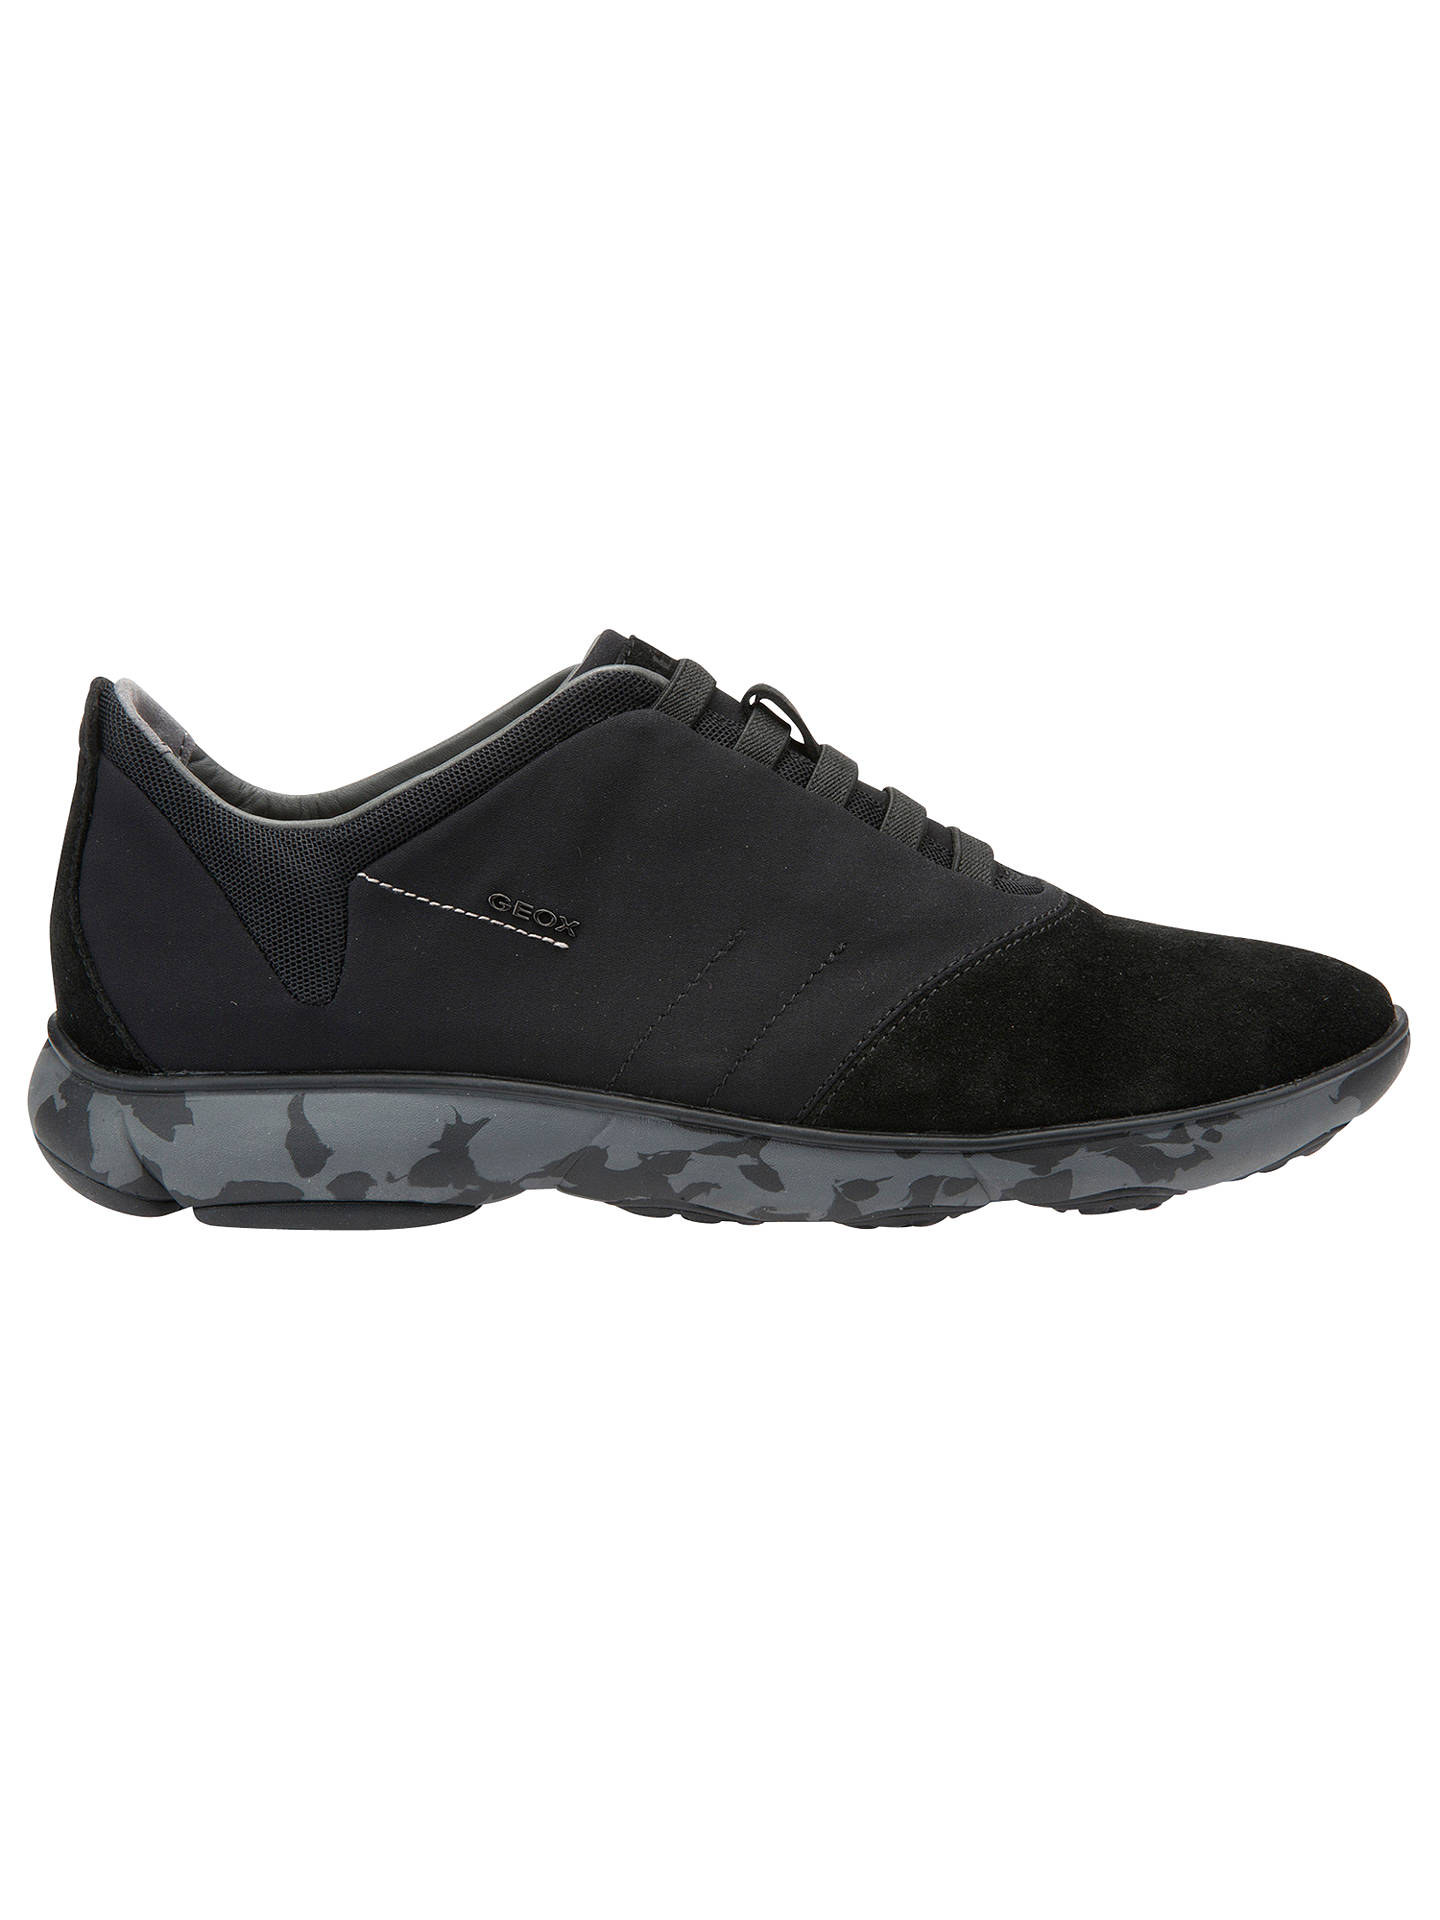 b35d16aef385a Buy Geox Nebula Trainers , Black, 7 Online at johnlewis.com ...